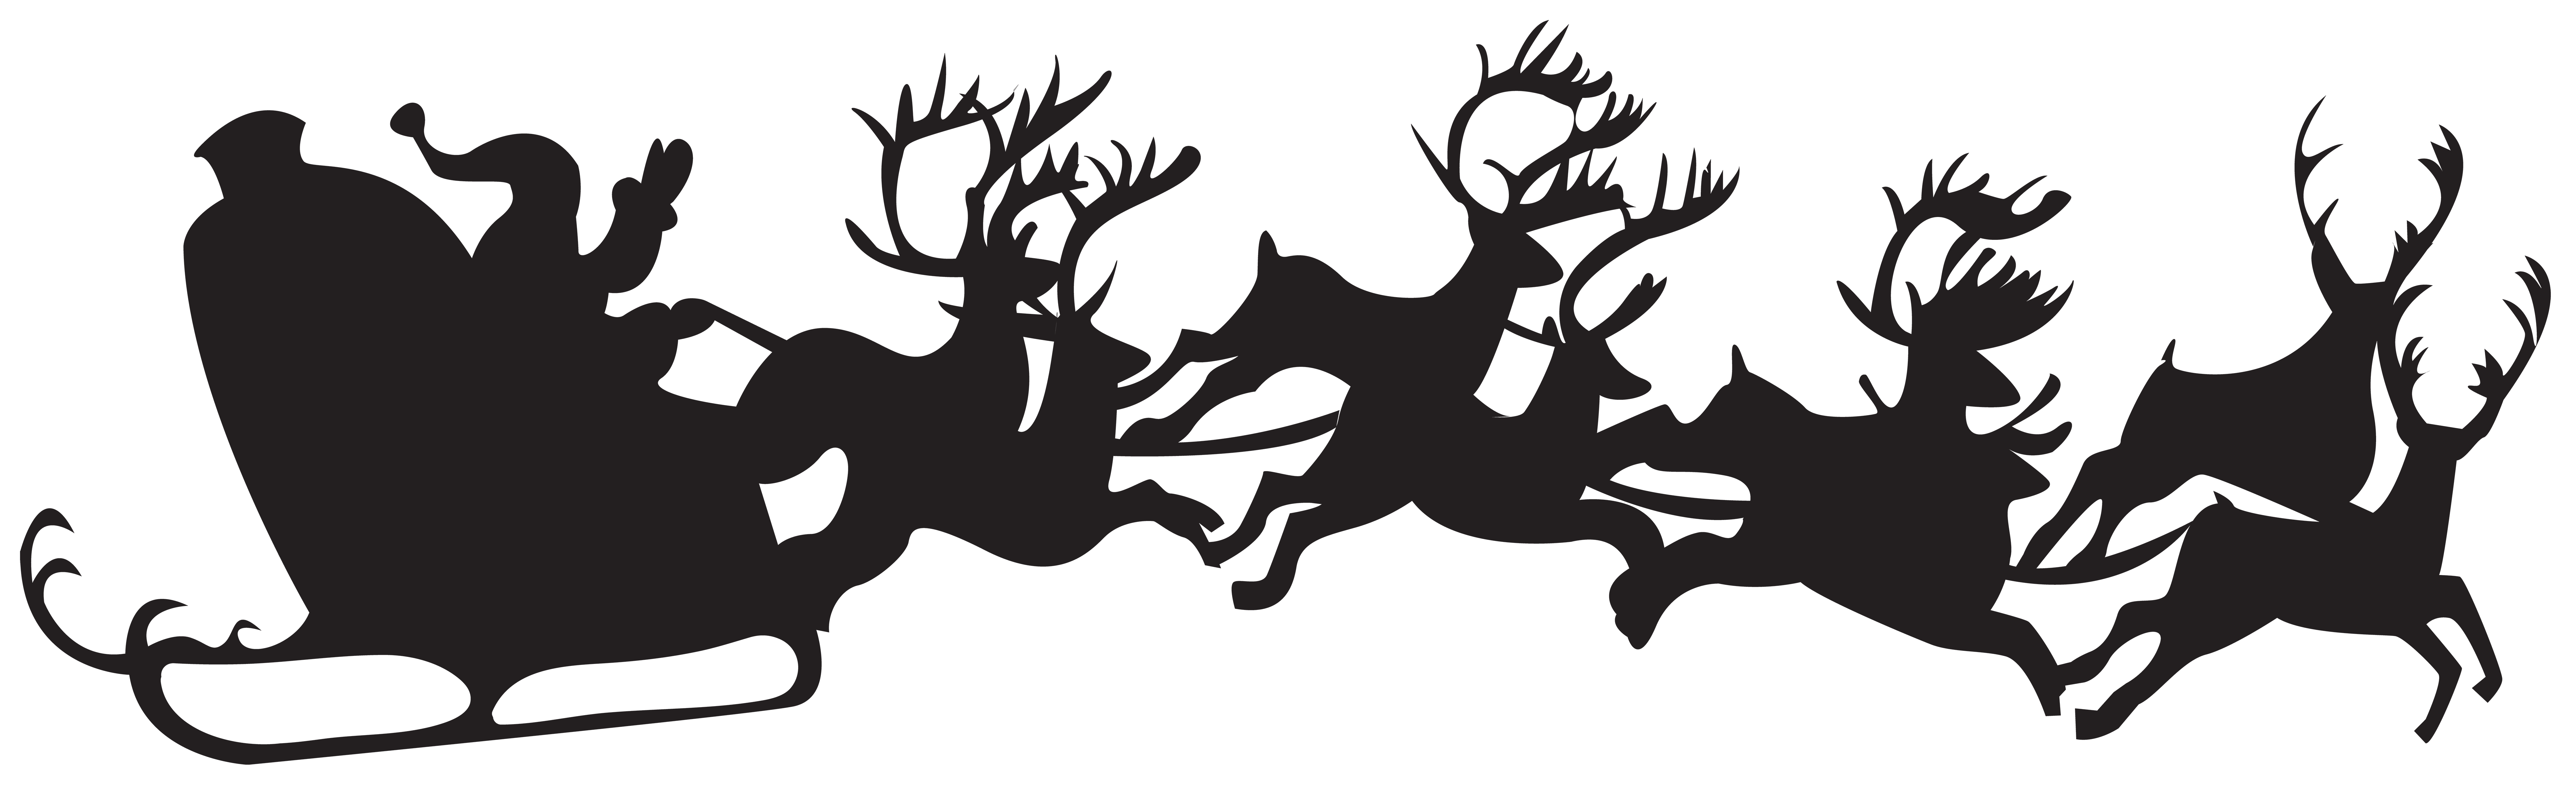 Christmas cliparts silhouette svg black and white Christmas Silhouette Santa Claus with Sleigh PNG Clip Art | Gallery ... svg black and white